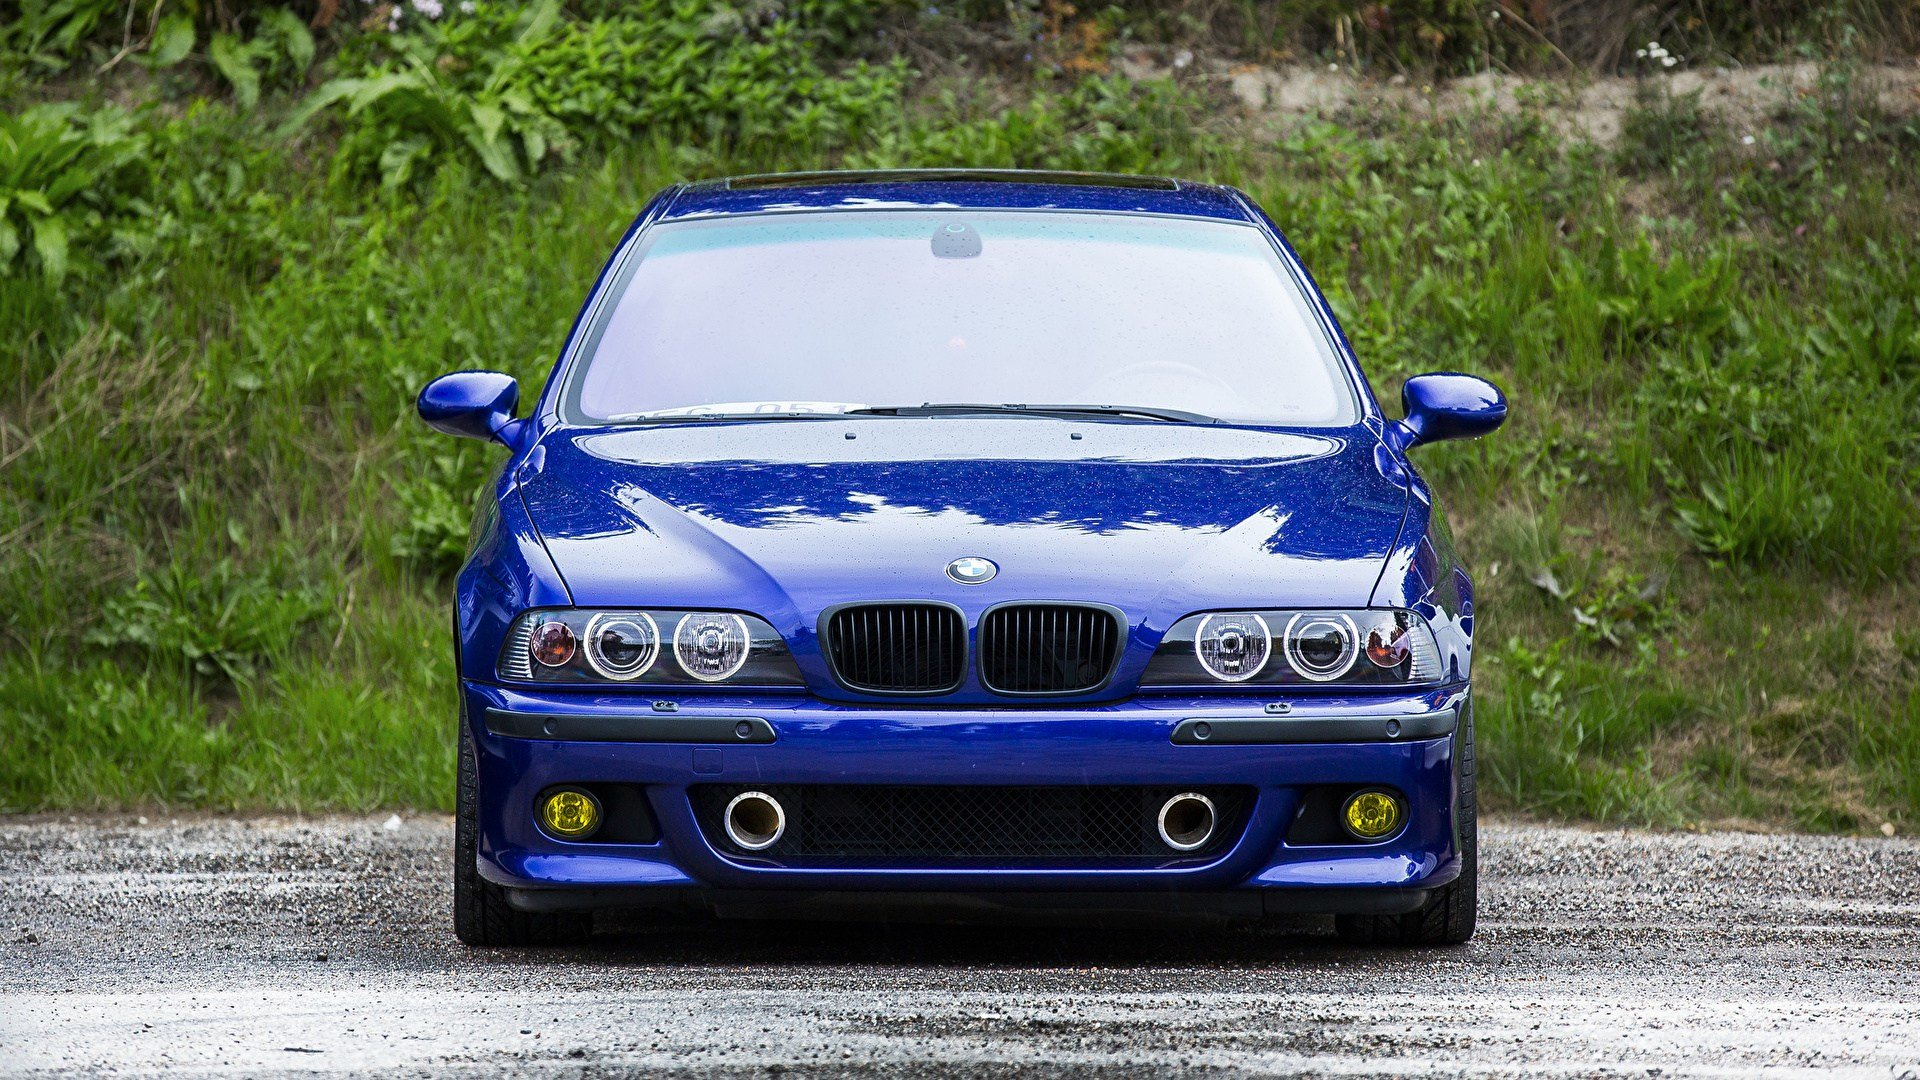 Latest Photos Bmw M5 E39 Blue Cars Front 1920X1080 Free Download